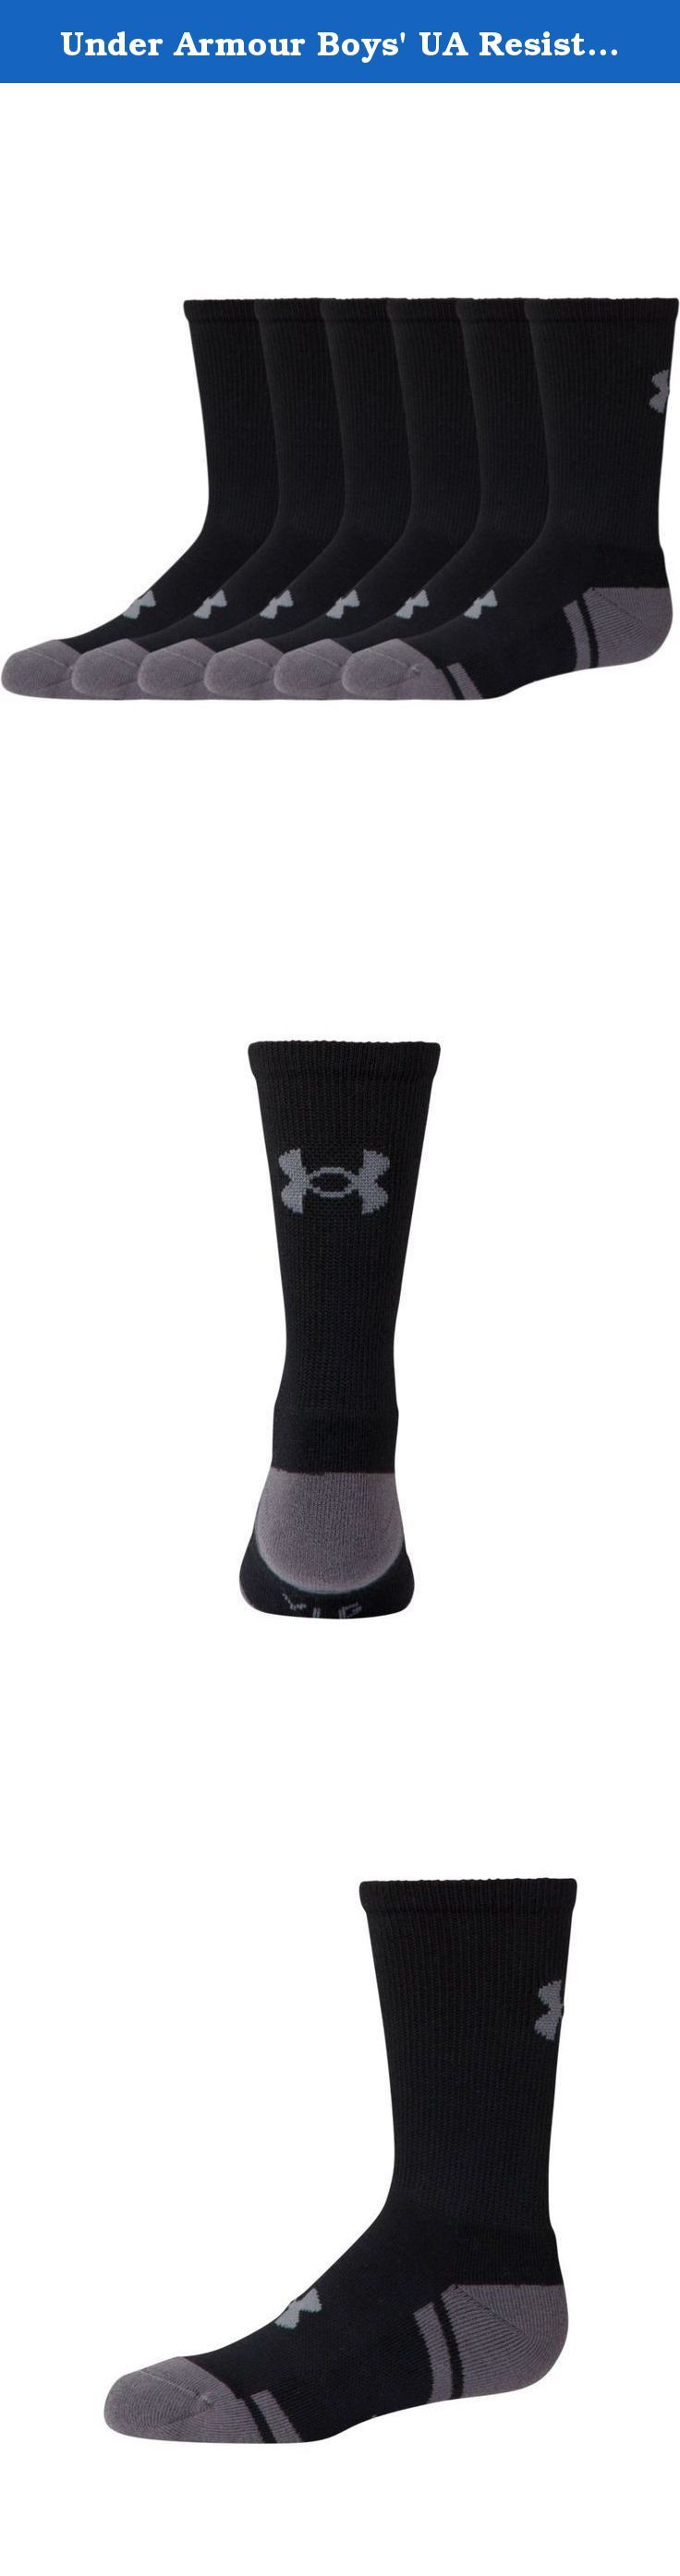 Under Armour Boys' UA Resistor III Crew Socks 6-Pack Youth Large Black. Strategic Cushioning protects high-impact areas of the foot. Moisture Transport System wicks sweat away from the body. ArmourBlock® anti-odor technology prevents the growth of odor causing microbes. Embedded arch support reduces foot fatigue. Six pairs of socks.